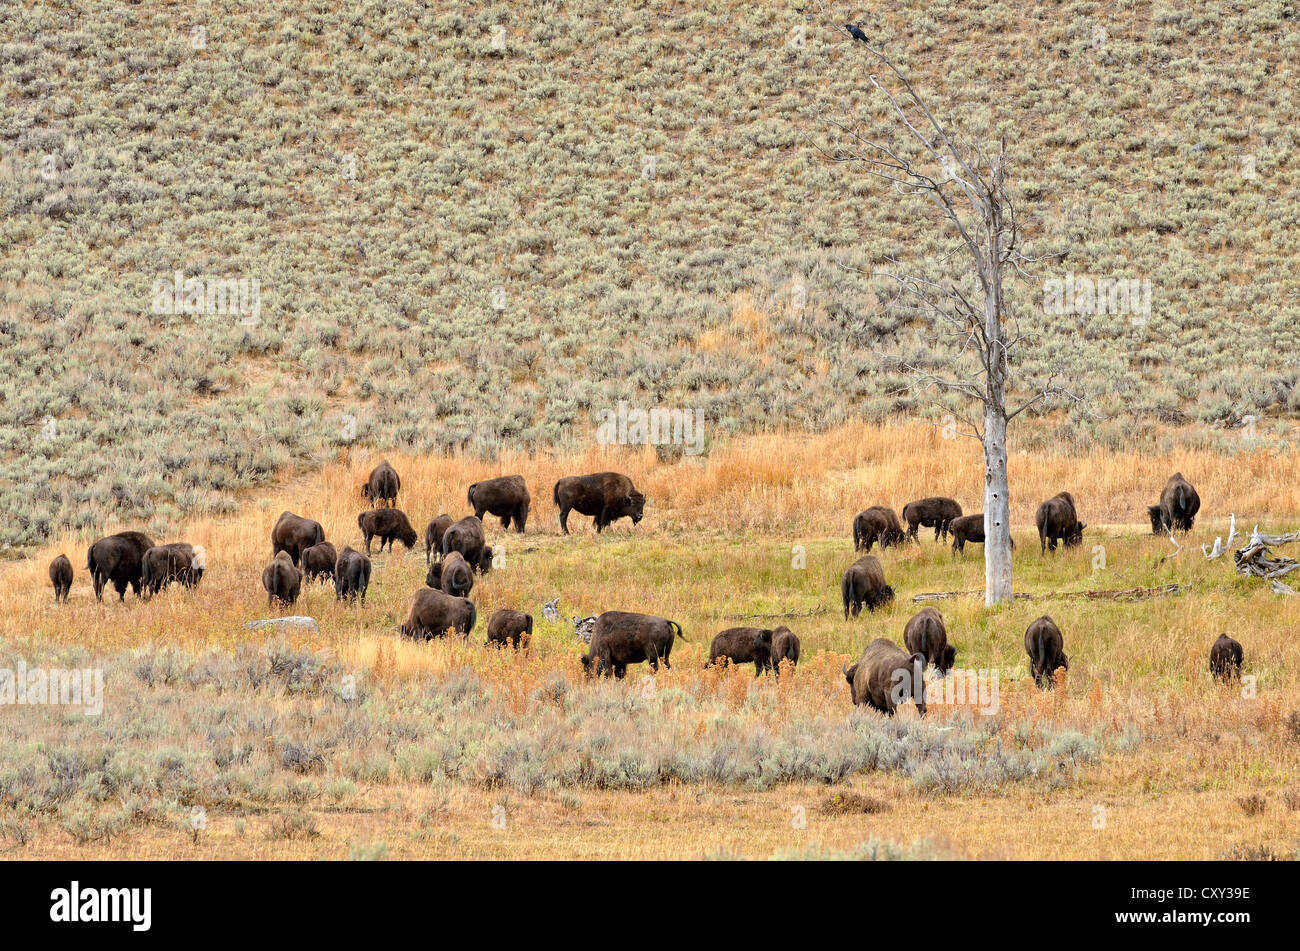 Herd of bison, American Bison (Bison bison), Lamar Valley, Yellowstone National Park, Wyoming, USA - Stock Image